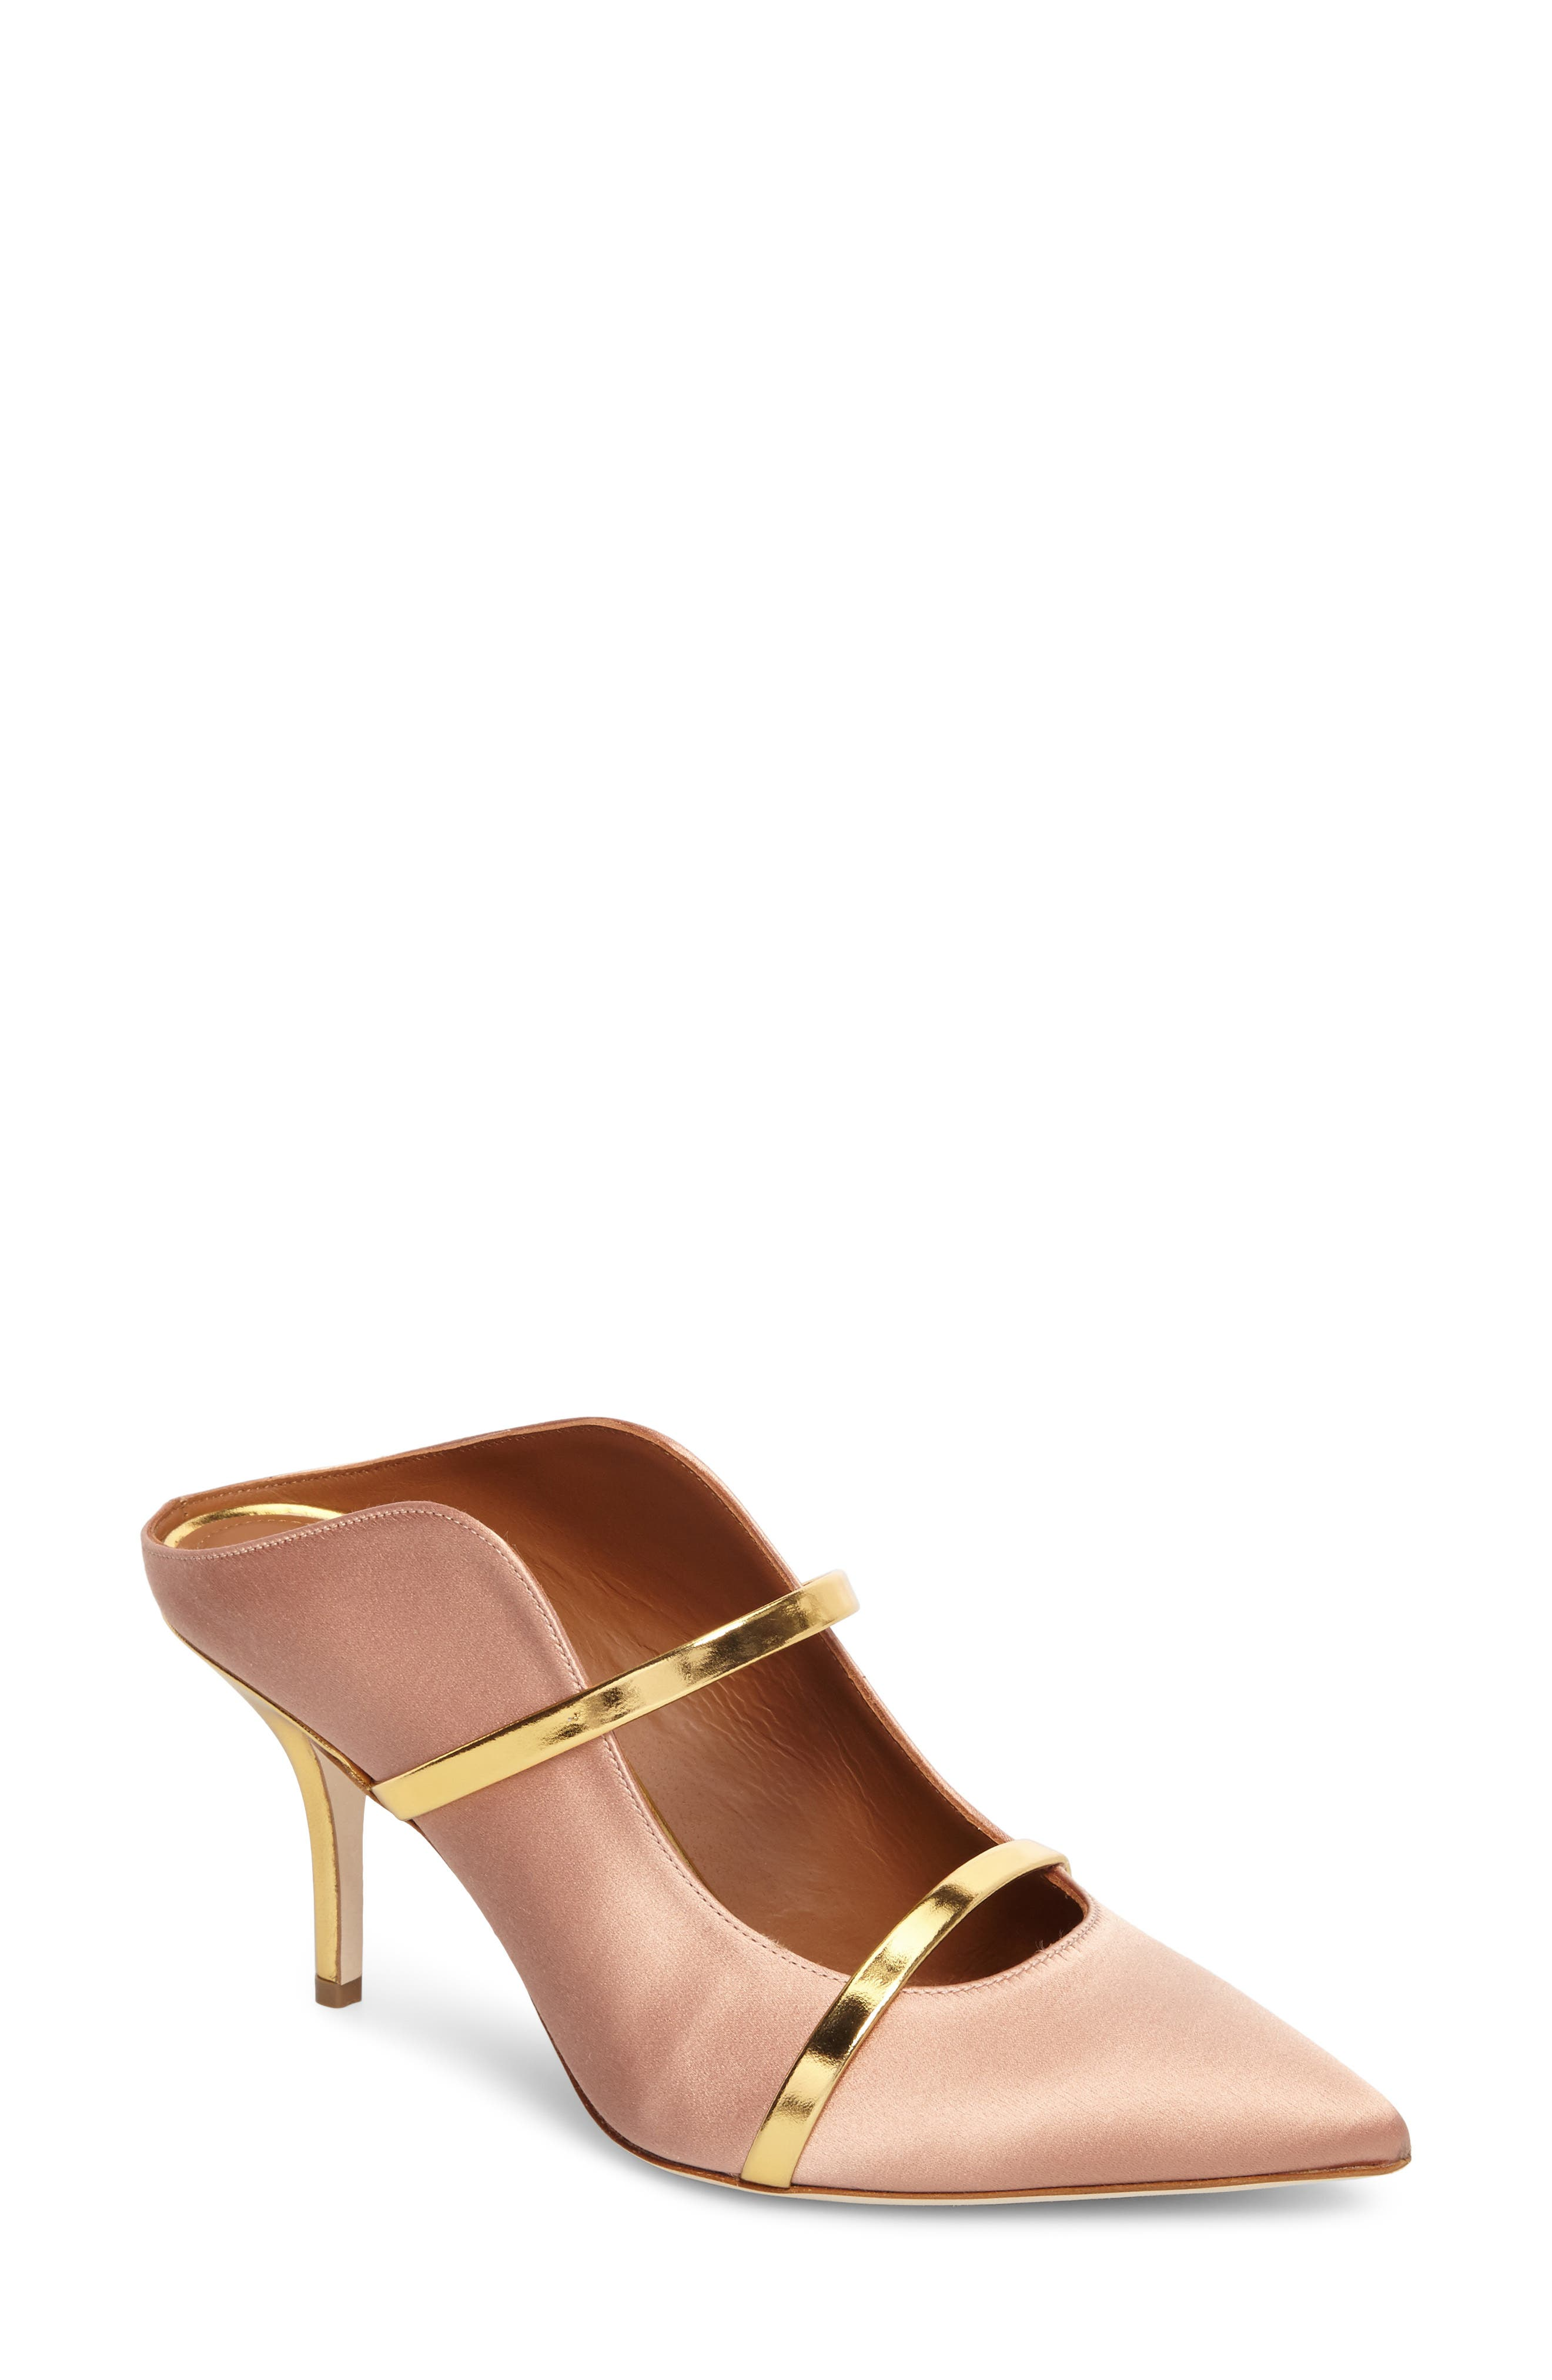 Maureen Double Band Mule,                         Main,                         color, Blush/ Gold